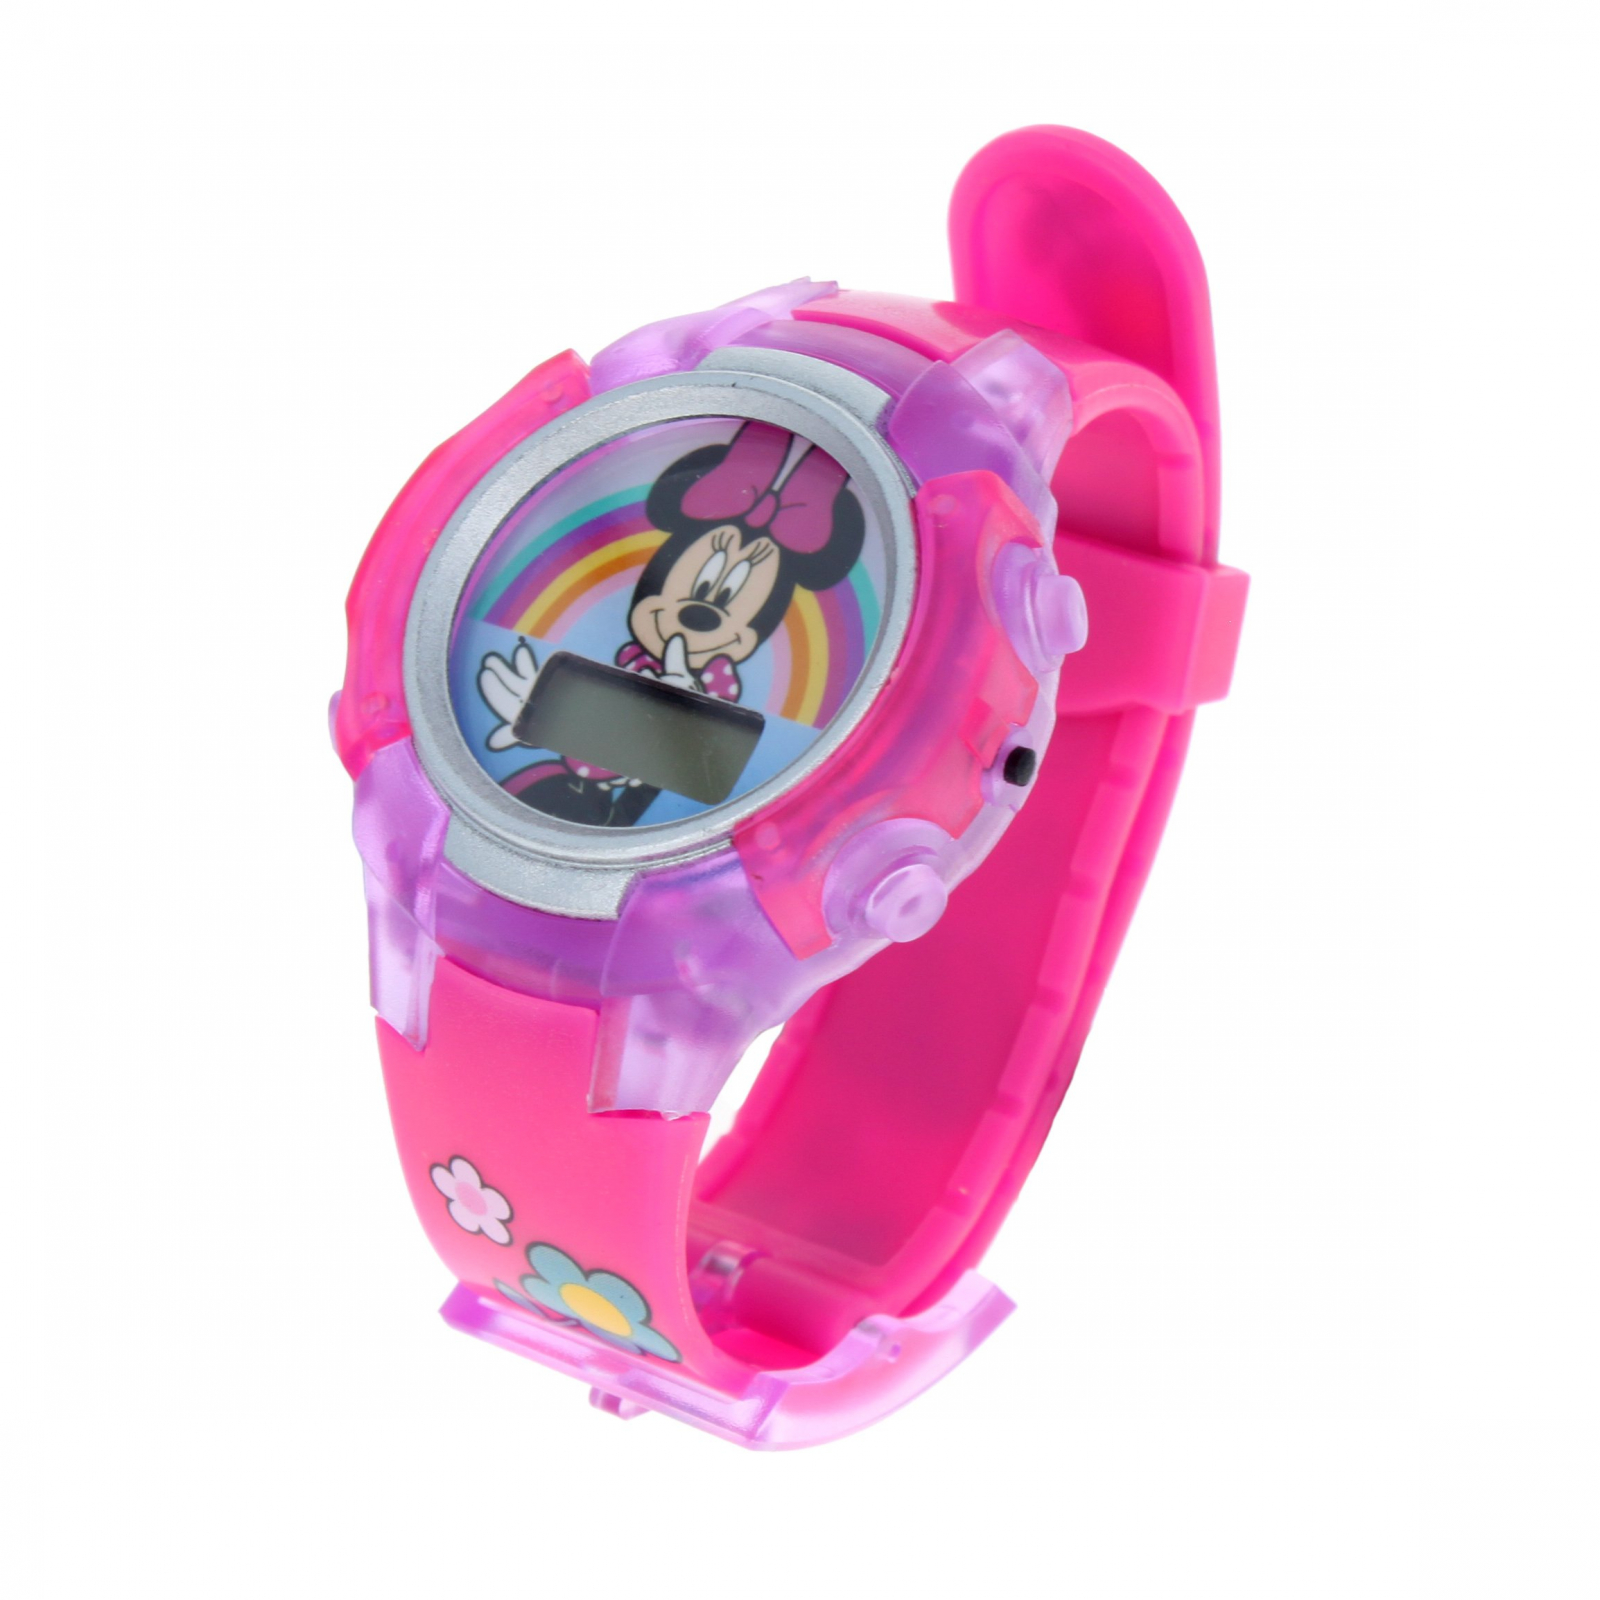 Minnie Mouse Adjustable Light Up Flashing LCD Wrist Watch